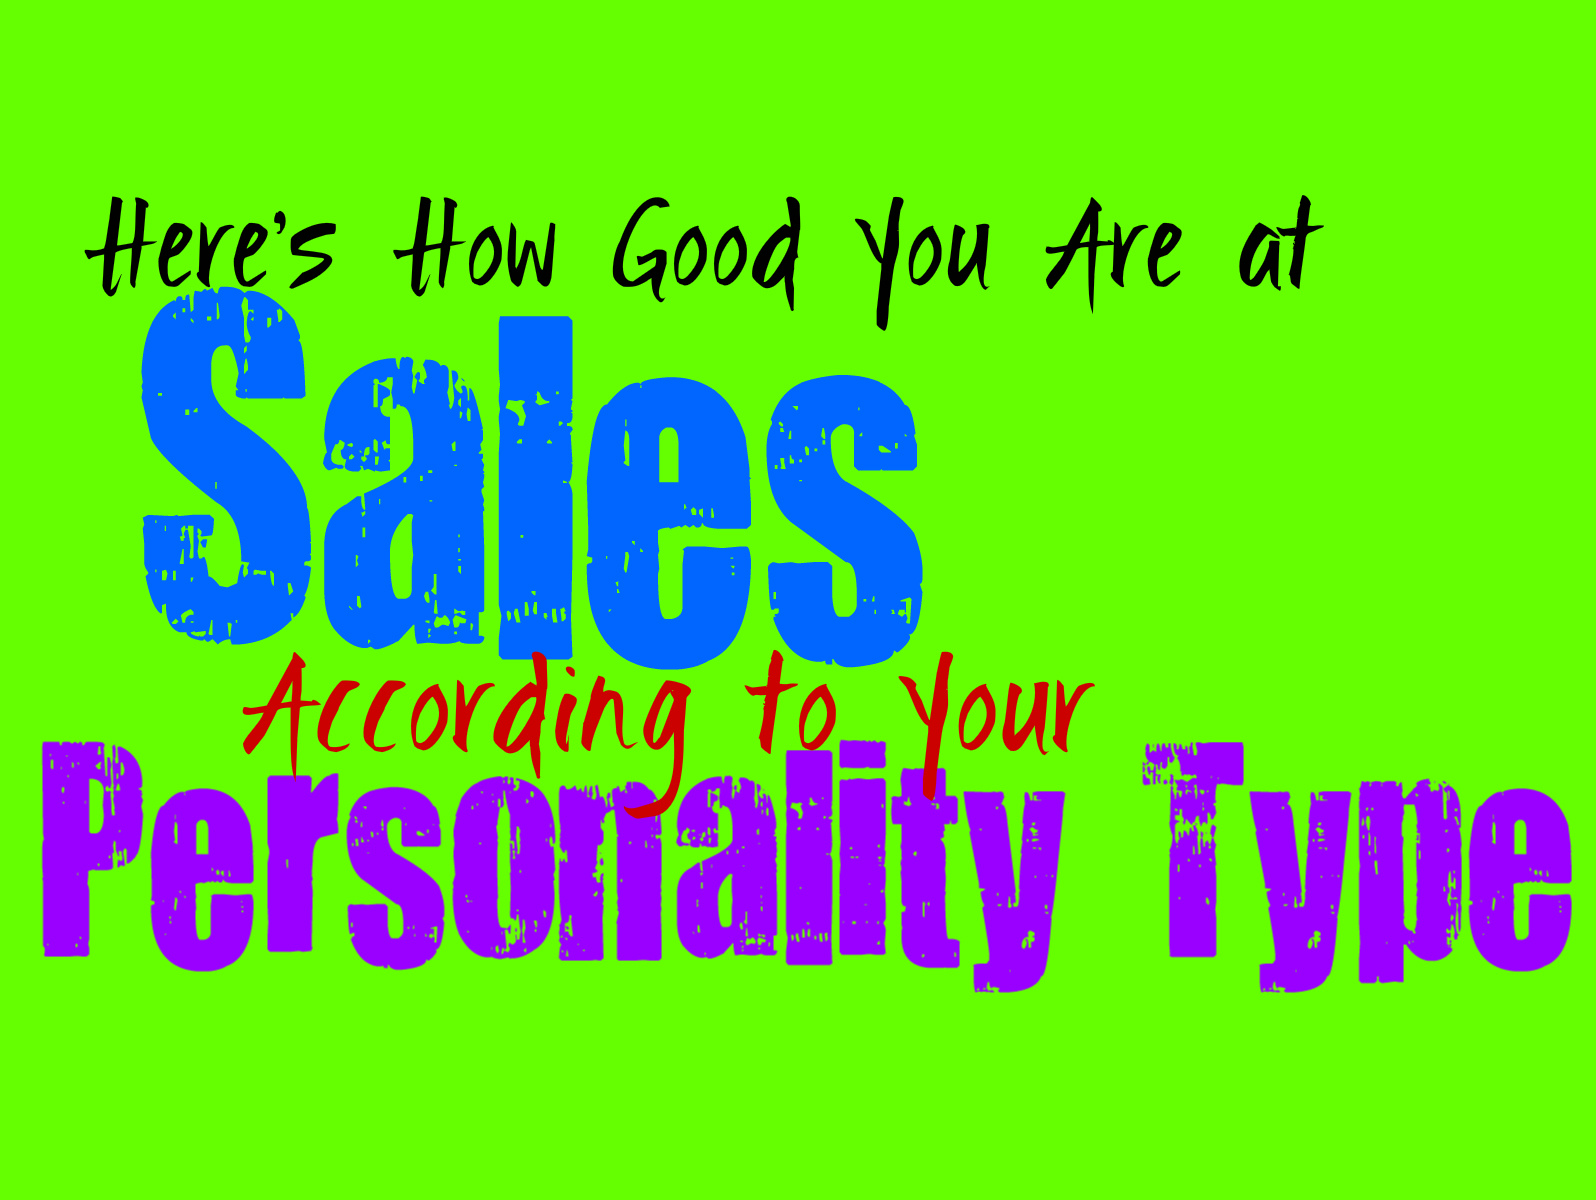 Here's How Good You Are at Sales, According to Your